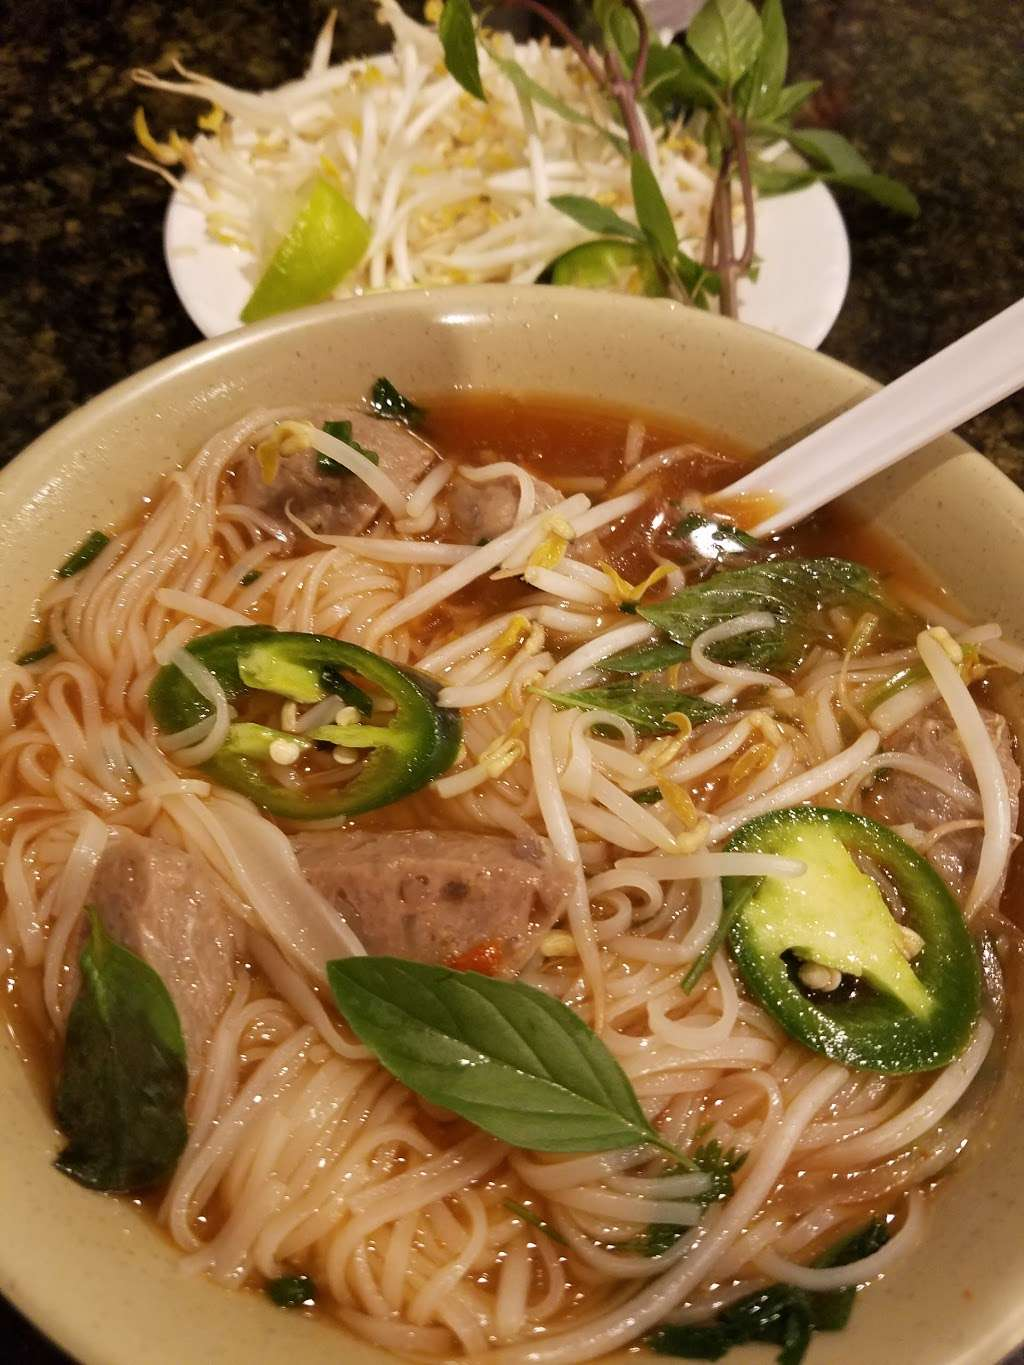 New Pho 999 - restaurant  | Photo 9 of 10 | Address: 12905 Sherman Way, North Hollywood, CA 91605, USA | Phone: (818) 982-9370